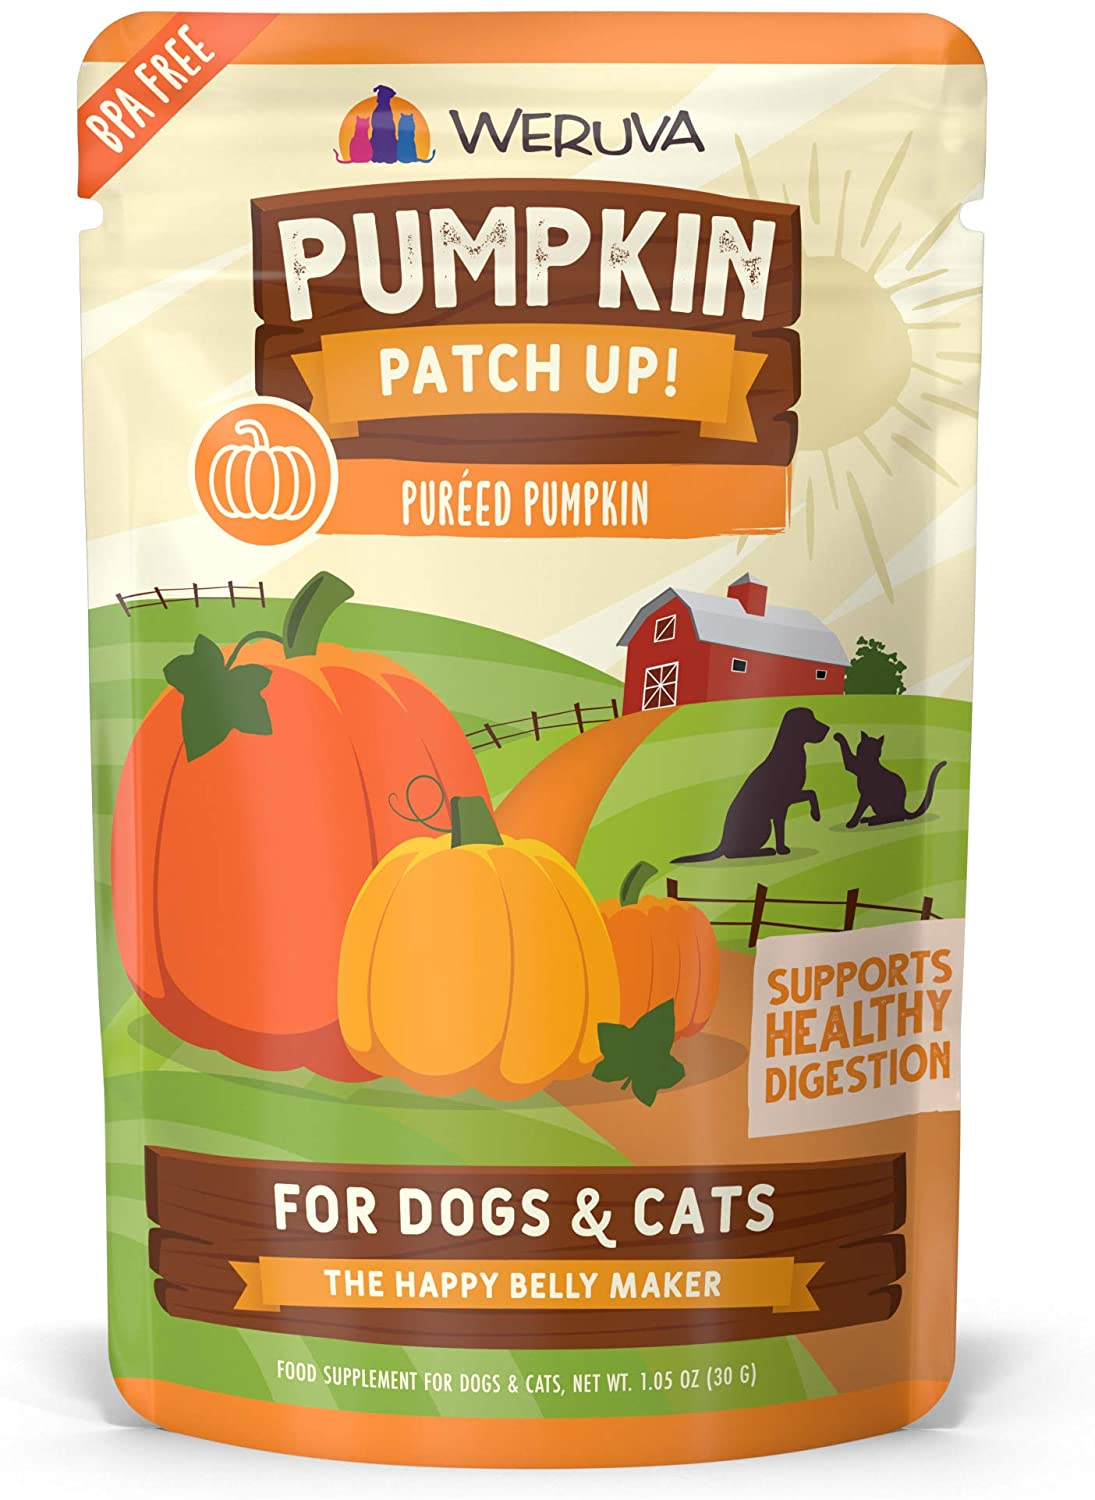 Weruva Pumpkin Patch Up! Pumpkin Pouches for Dogs & Cats